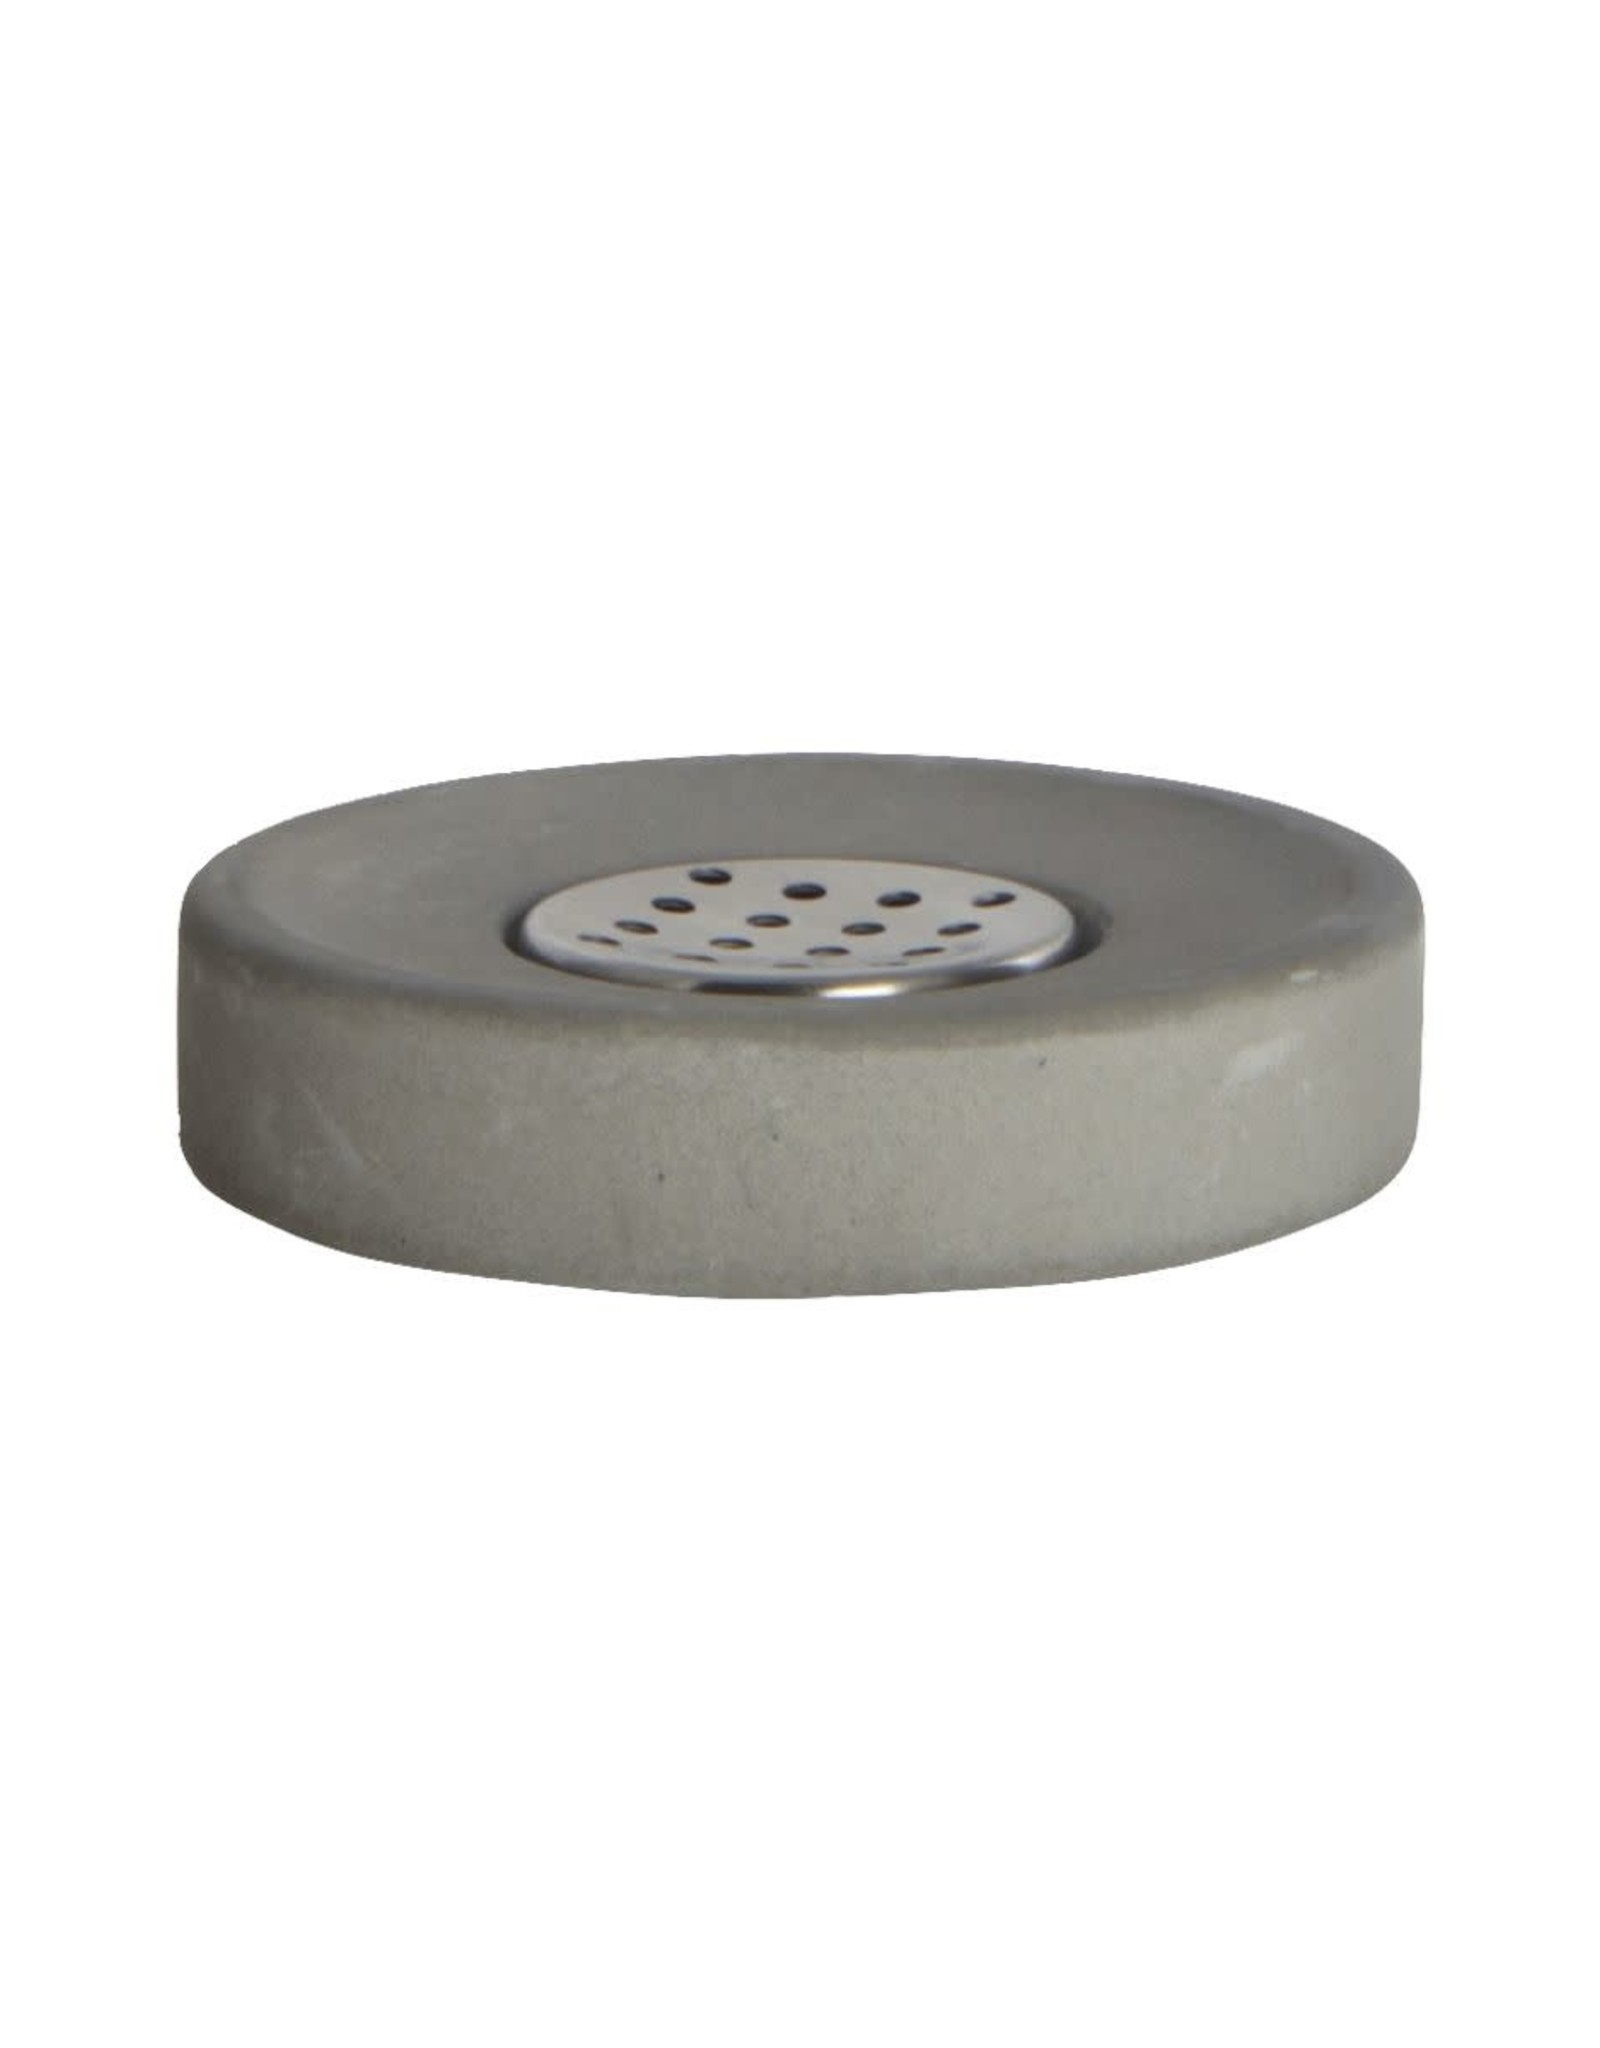 House Doctor Soap Dish Cement